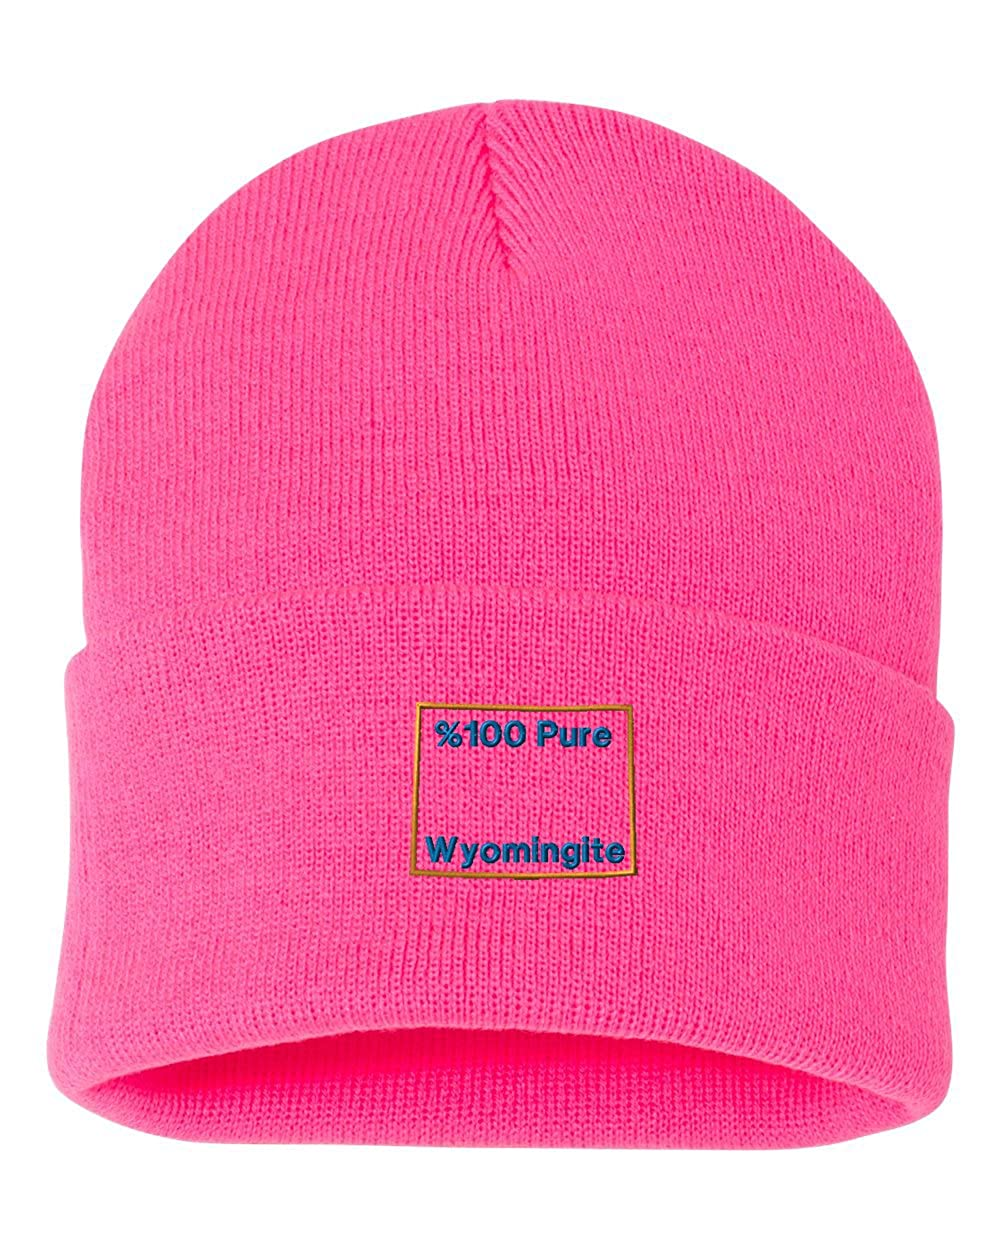 /%100 Pure Wyomingite Custom Personalized Embroidery Embroidered Beanie